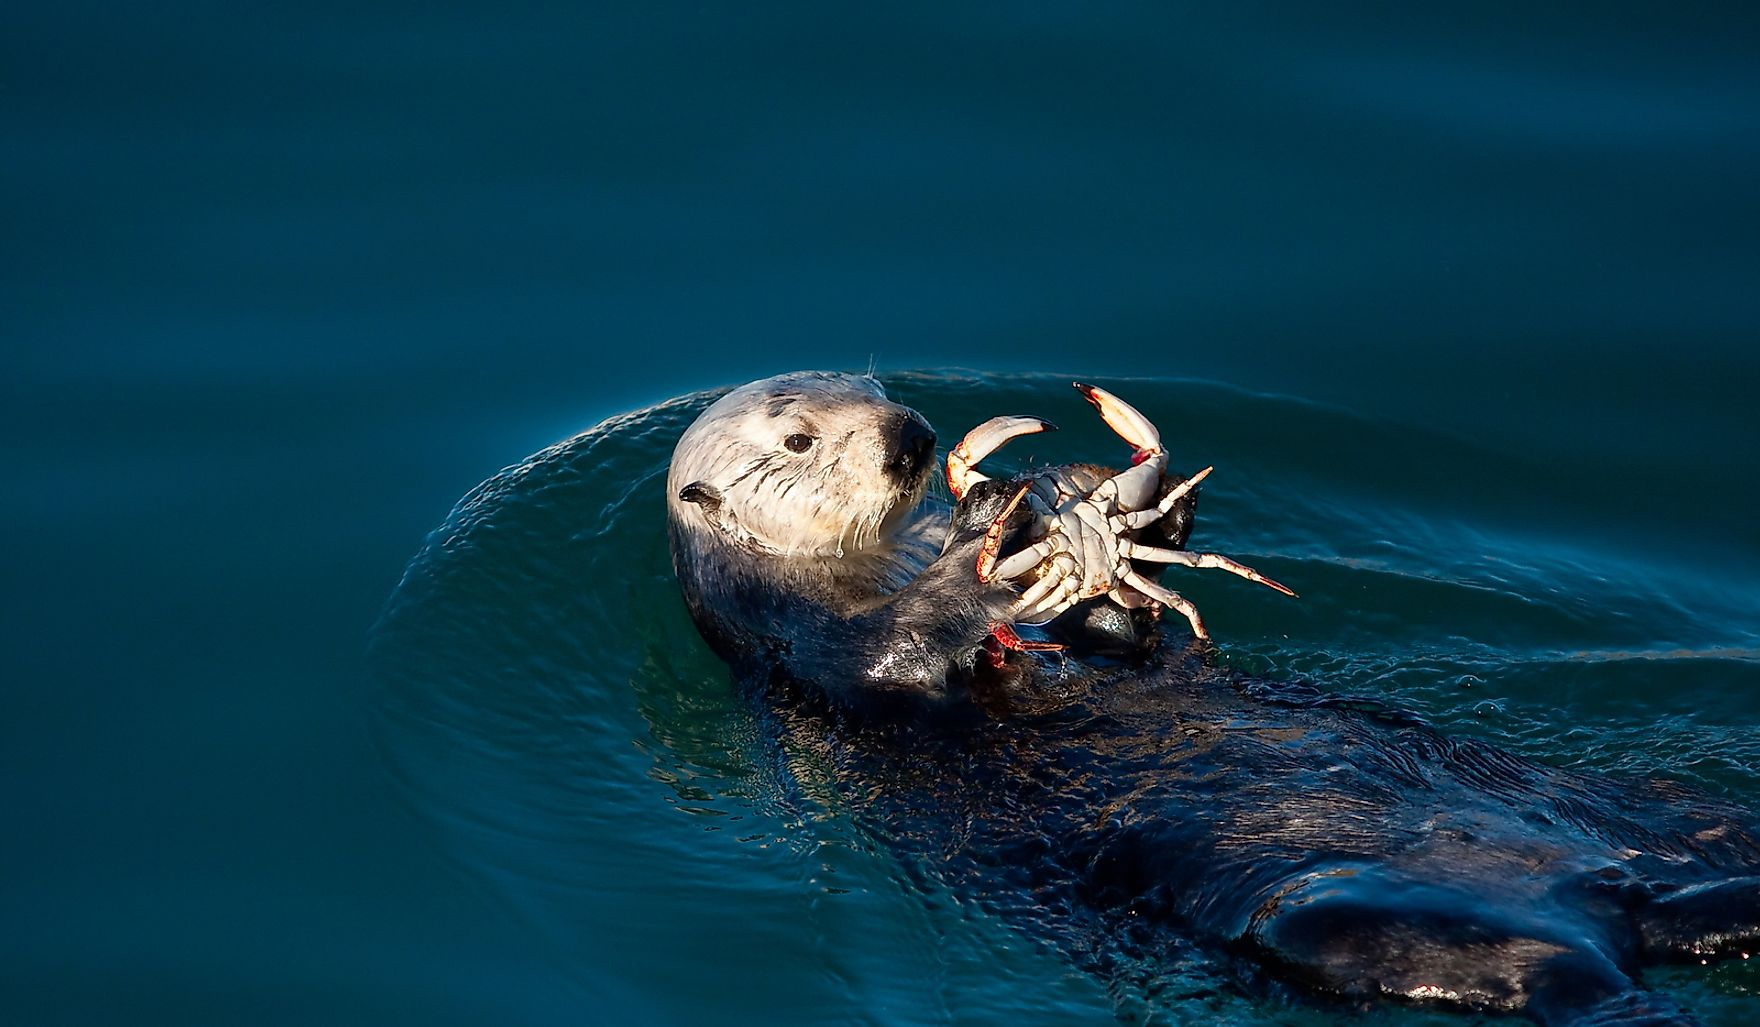 Sea otter eating a crab in Morro Bay.